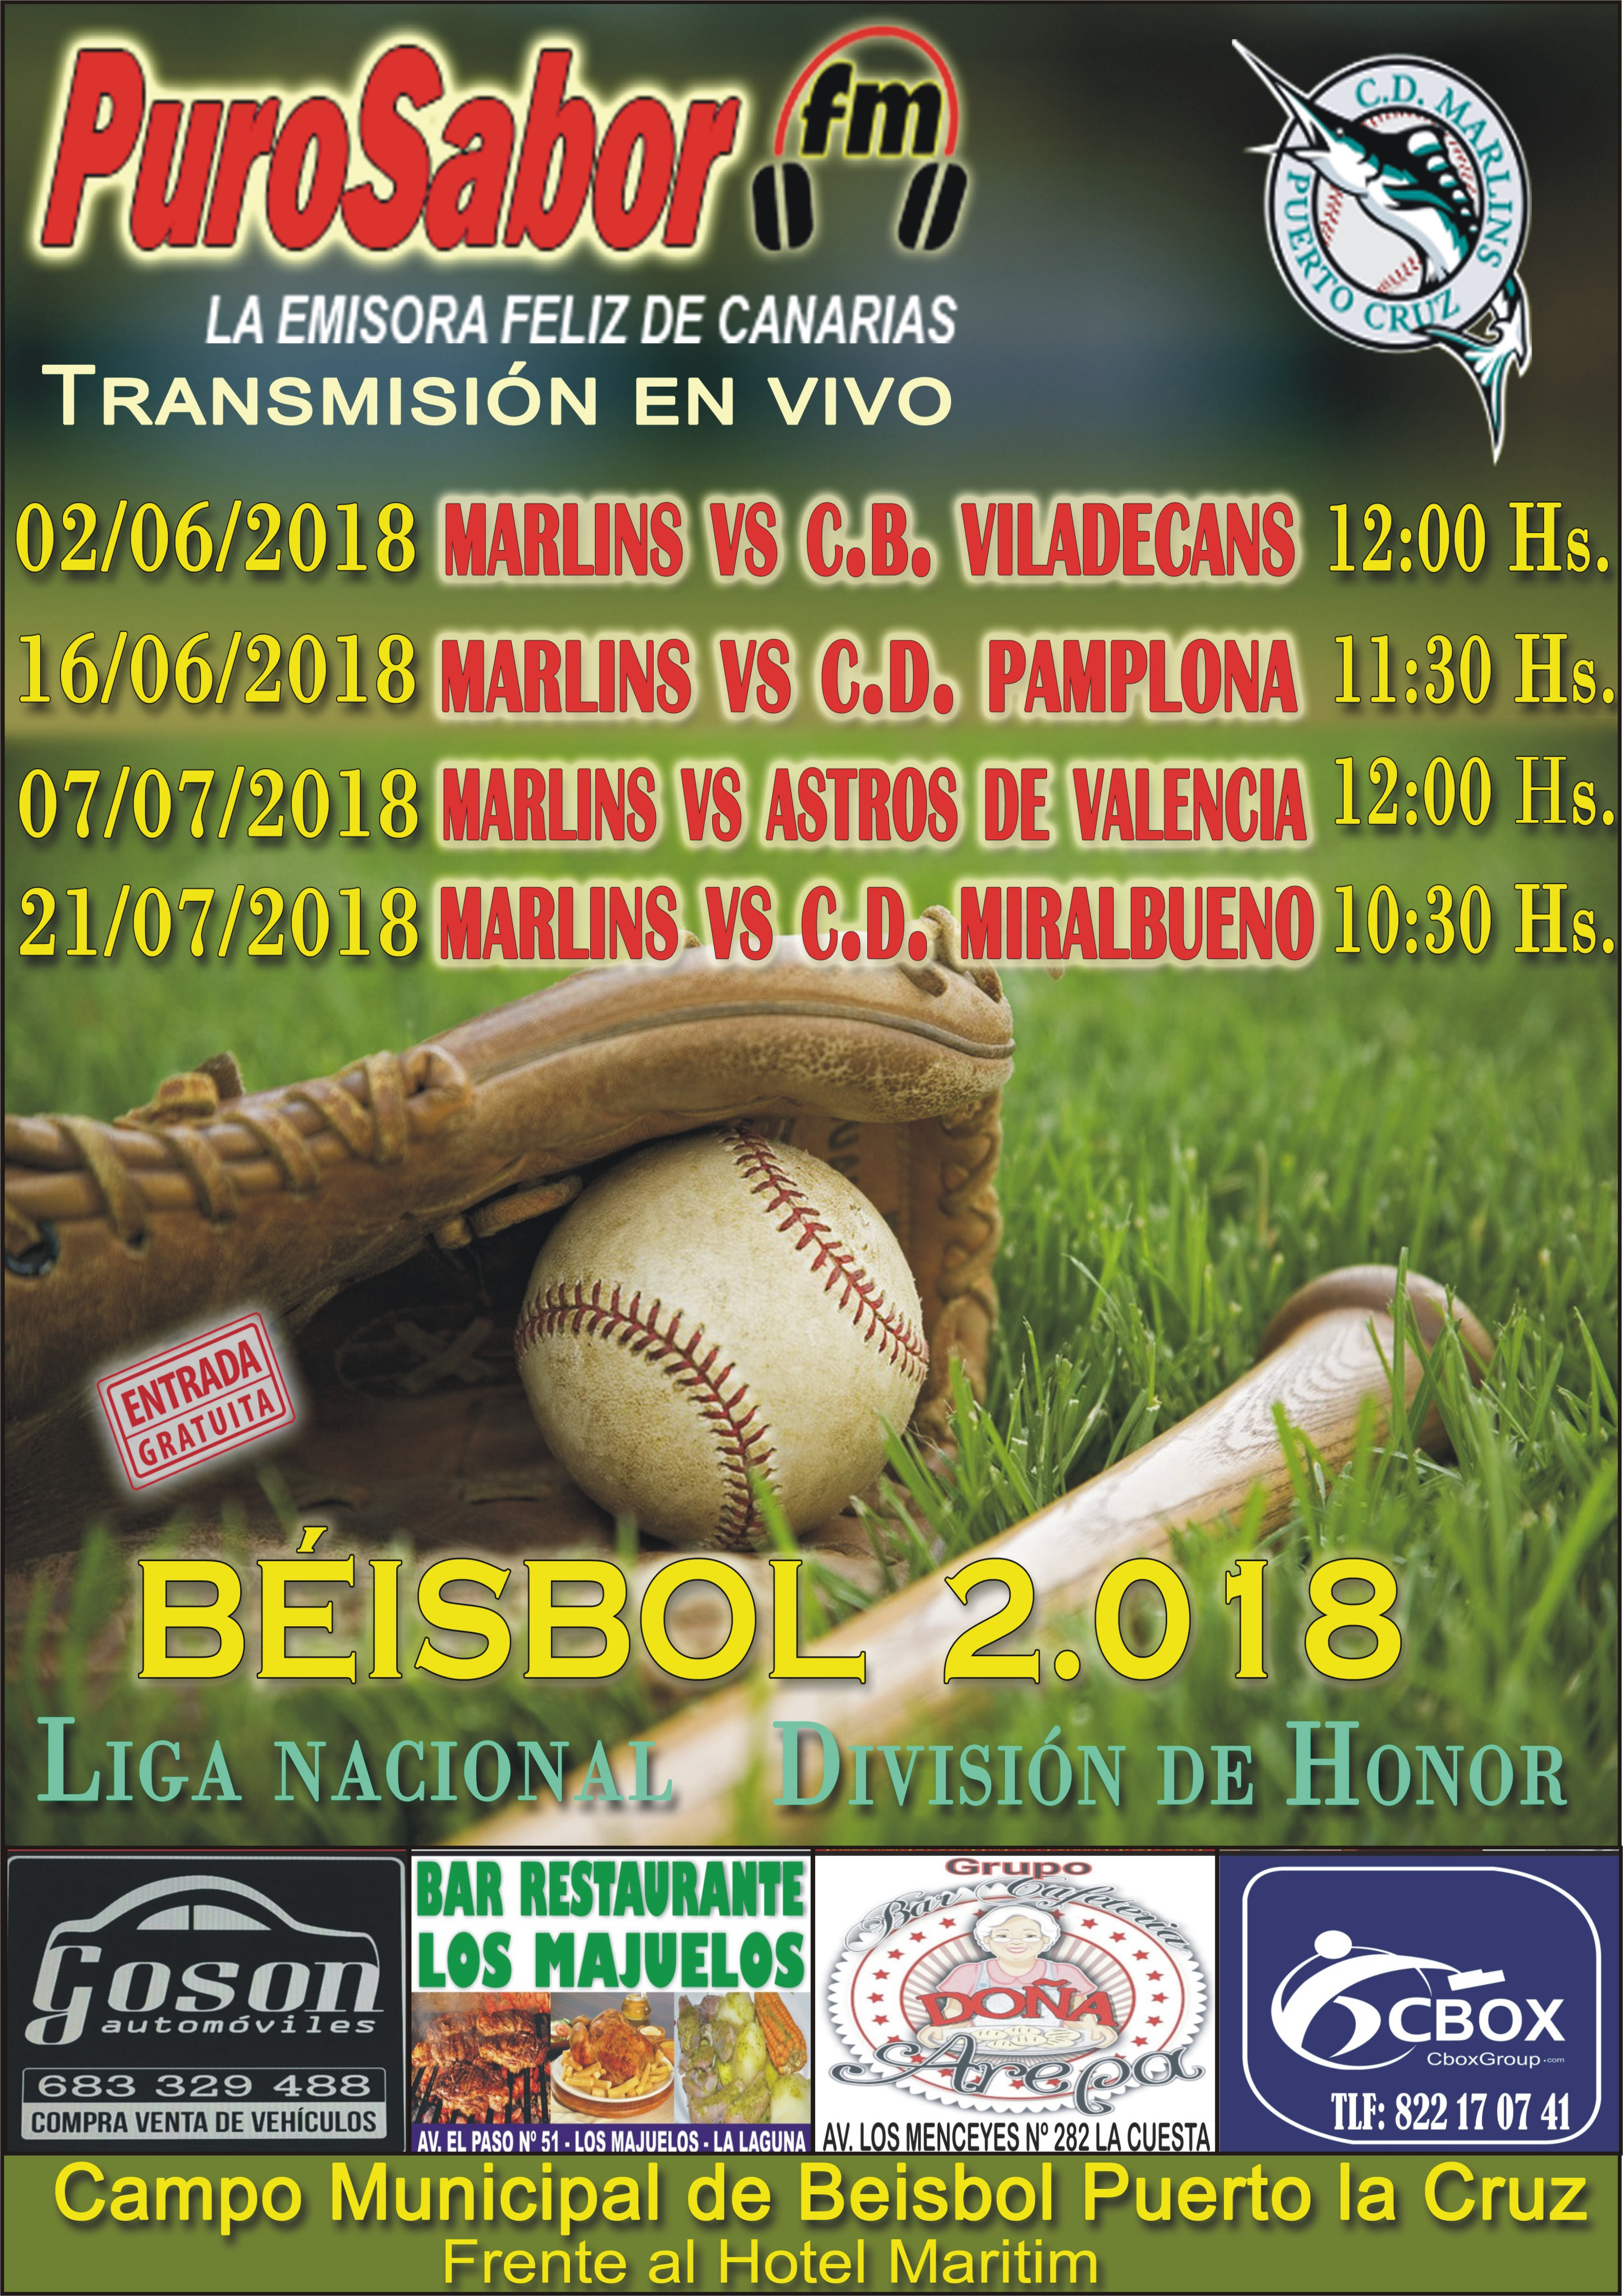 CARTEL BEISBOL MAYO 2018 CINCO